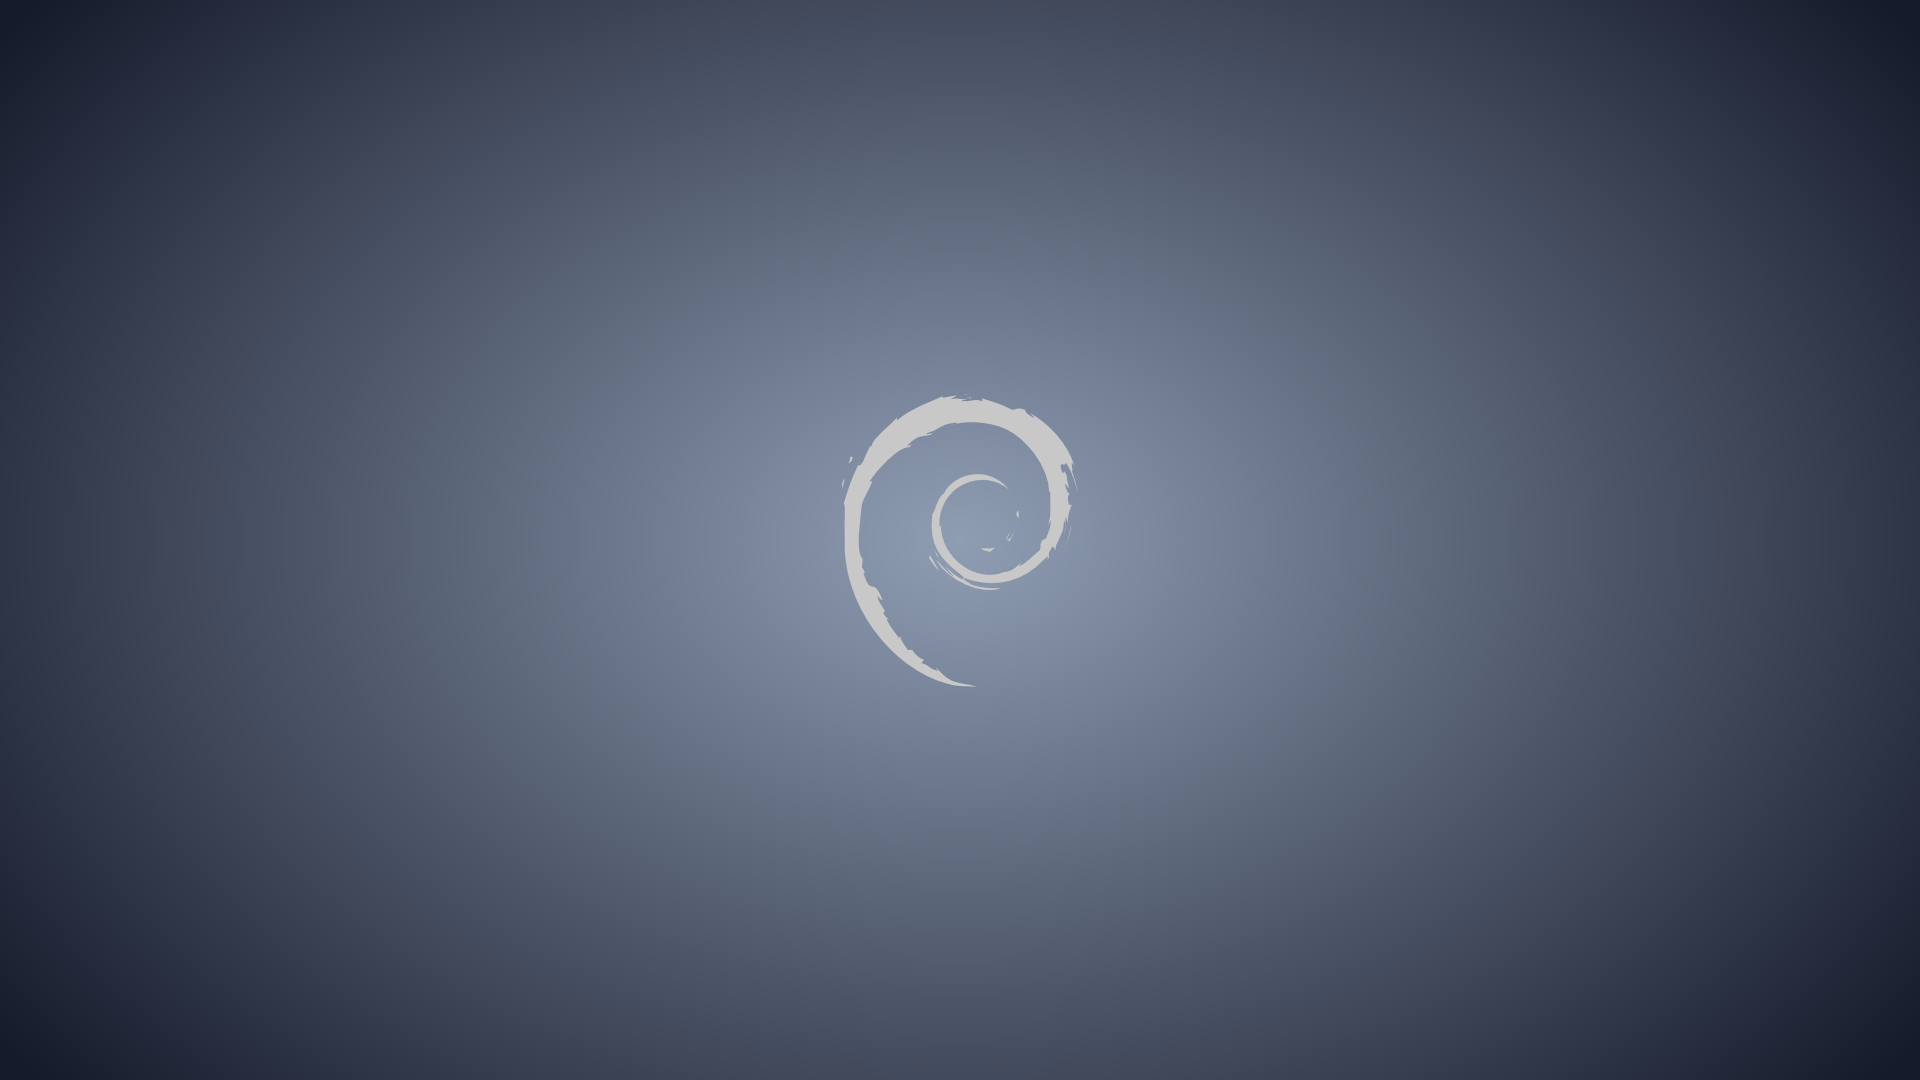 Awesome Debian wallpapers for Linux lovers HD Wallpapers 1920x1080